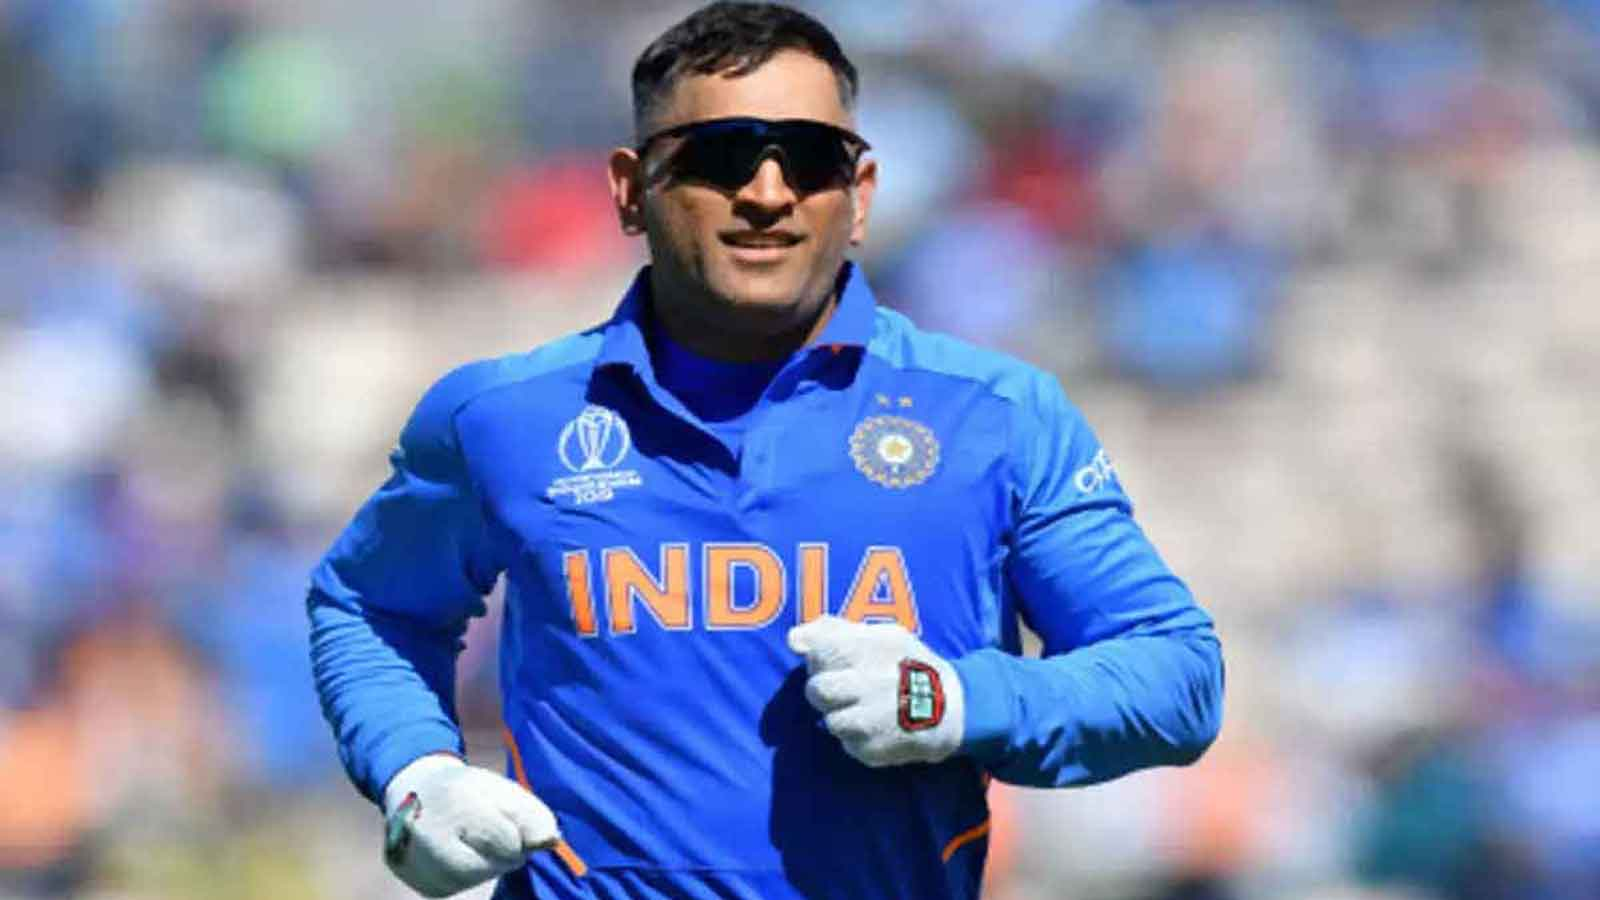 msd-retires-cricketers-celebs-pay-tribute-to-mahendra-singh-dhoni